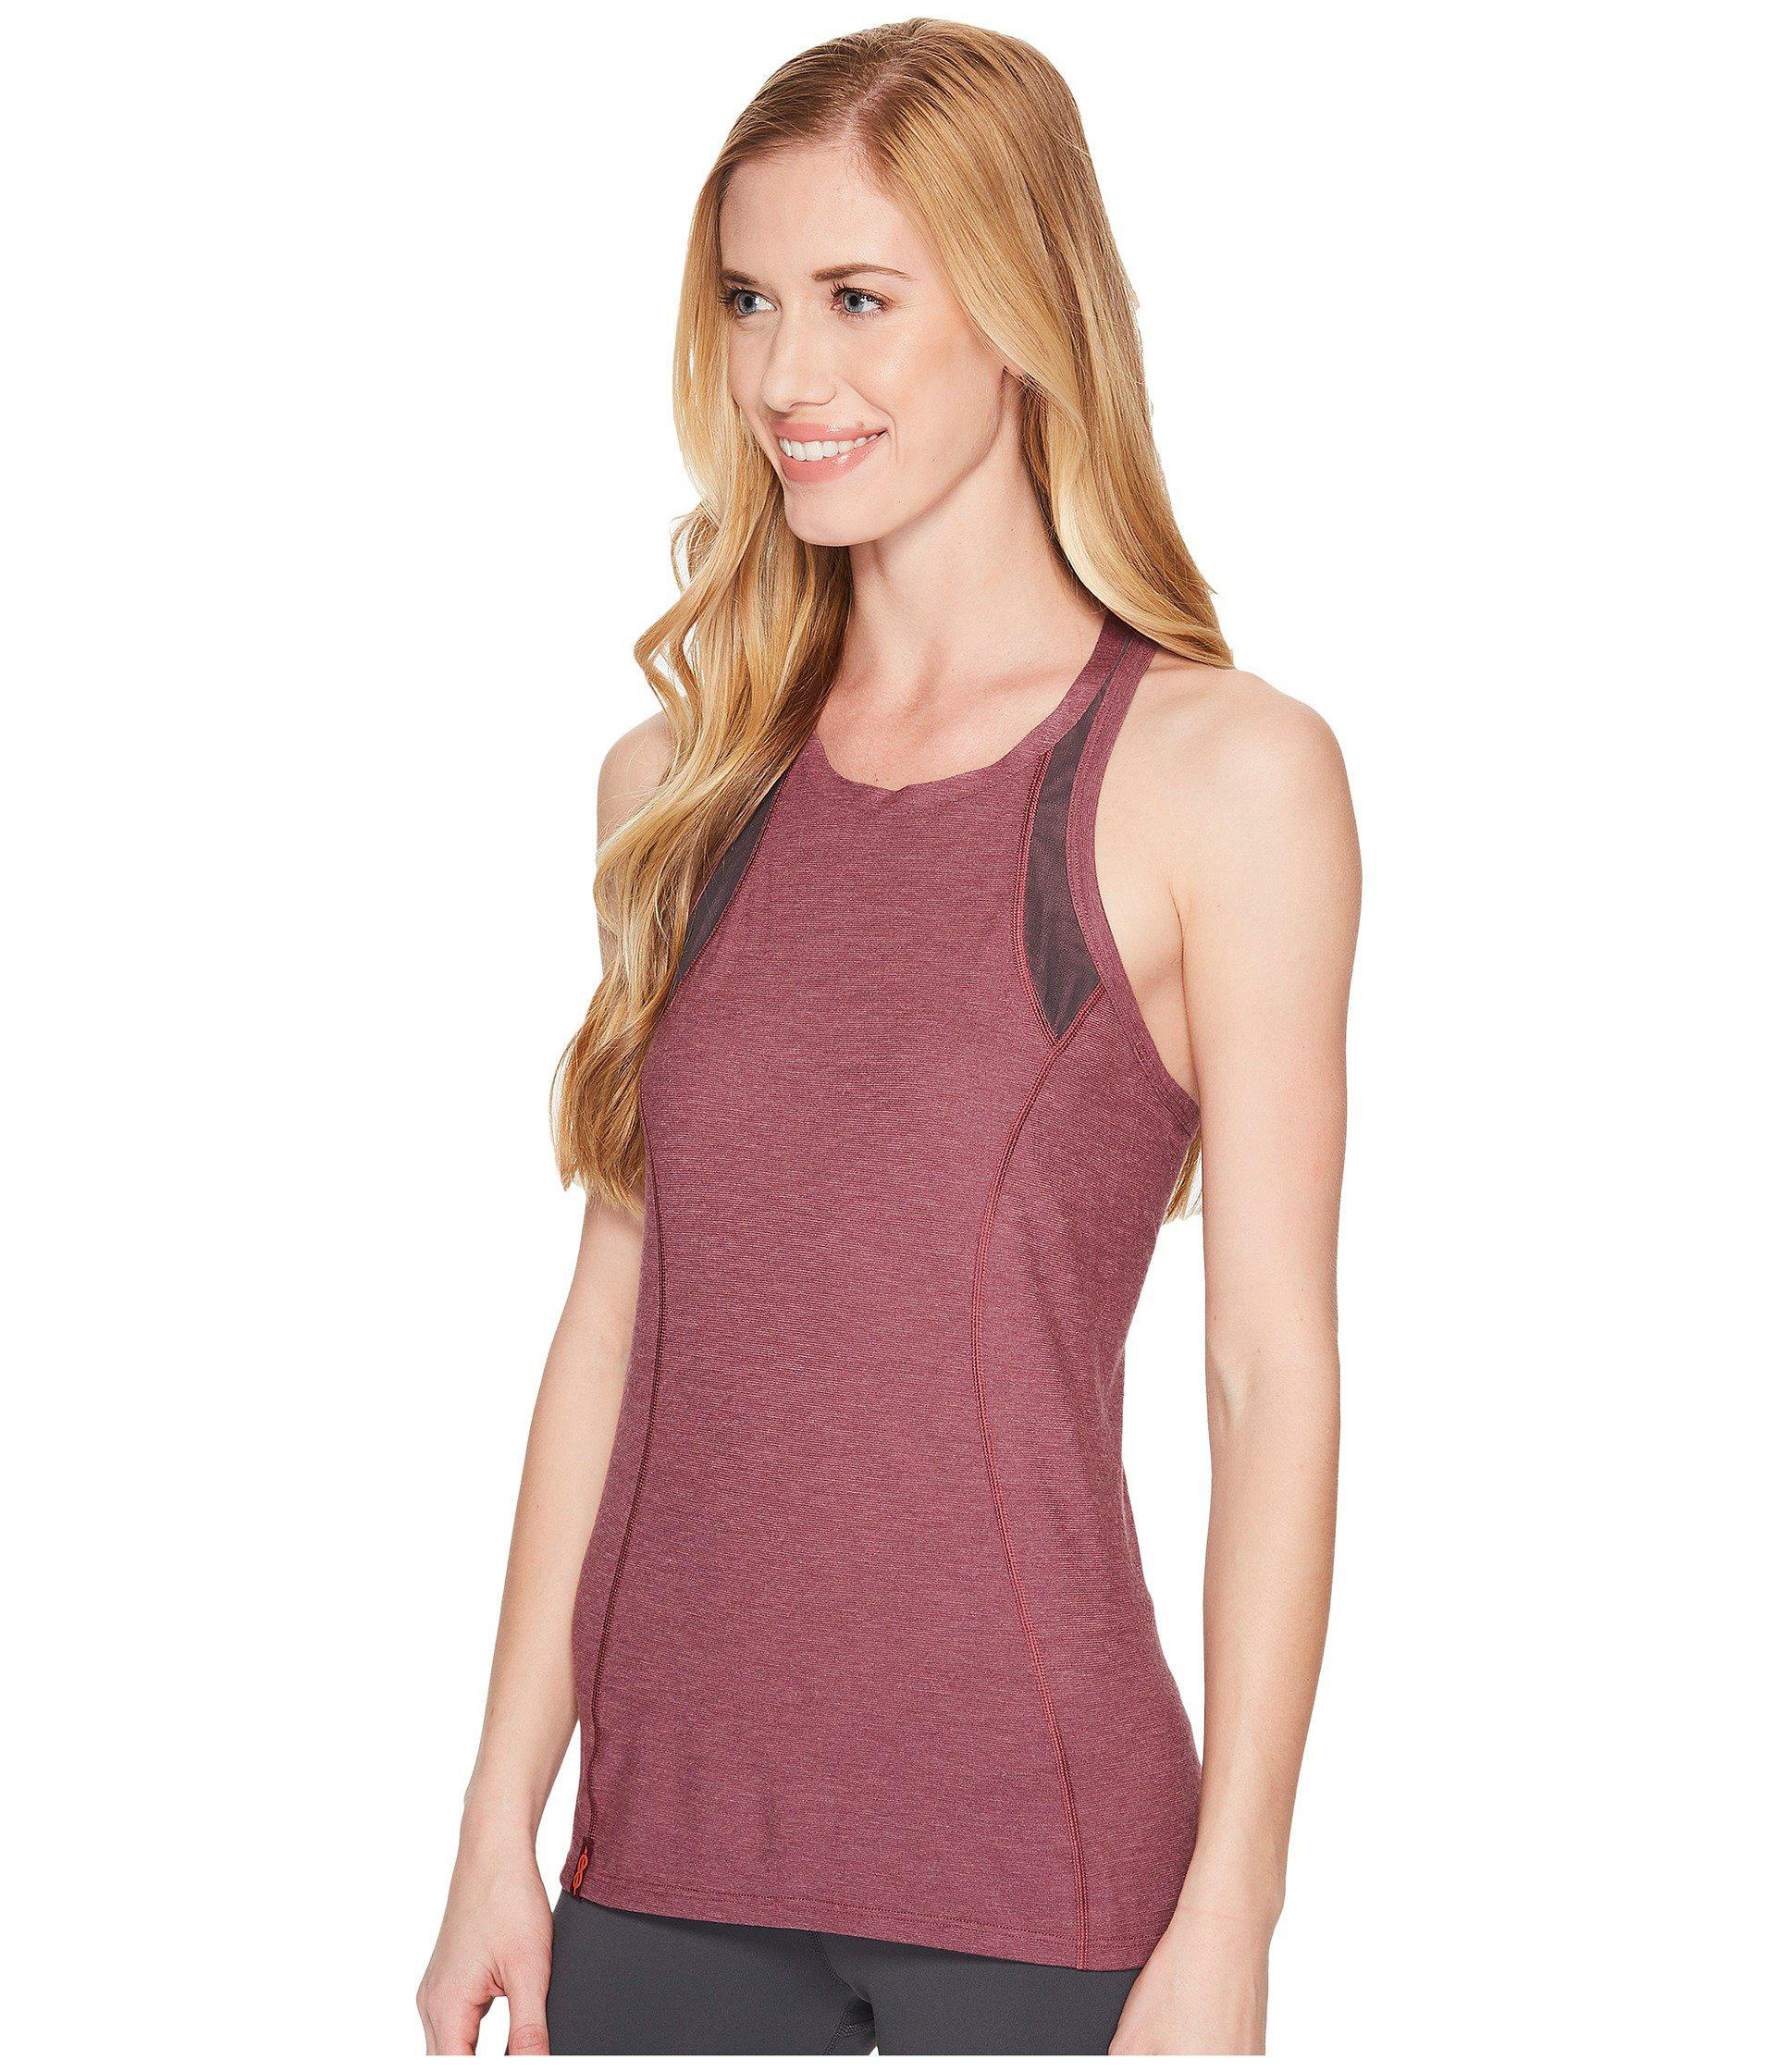 ad74e5ee2b3c9 Lyst - The North Face Beyond The Wall Tank Top in Purple - Save 17%